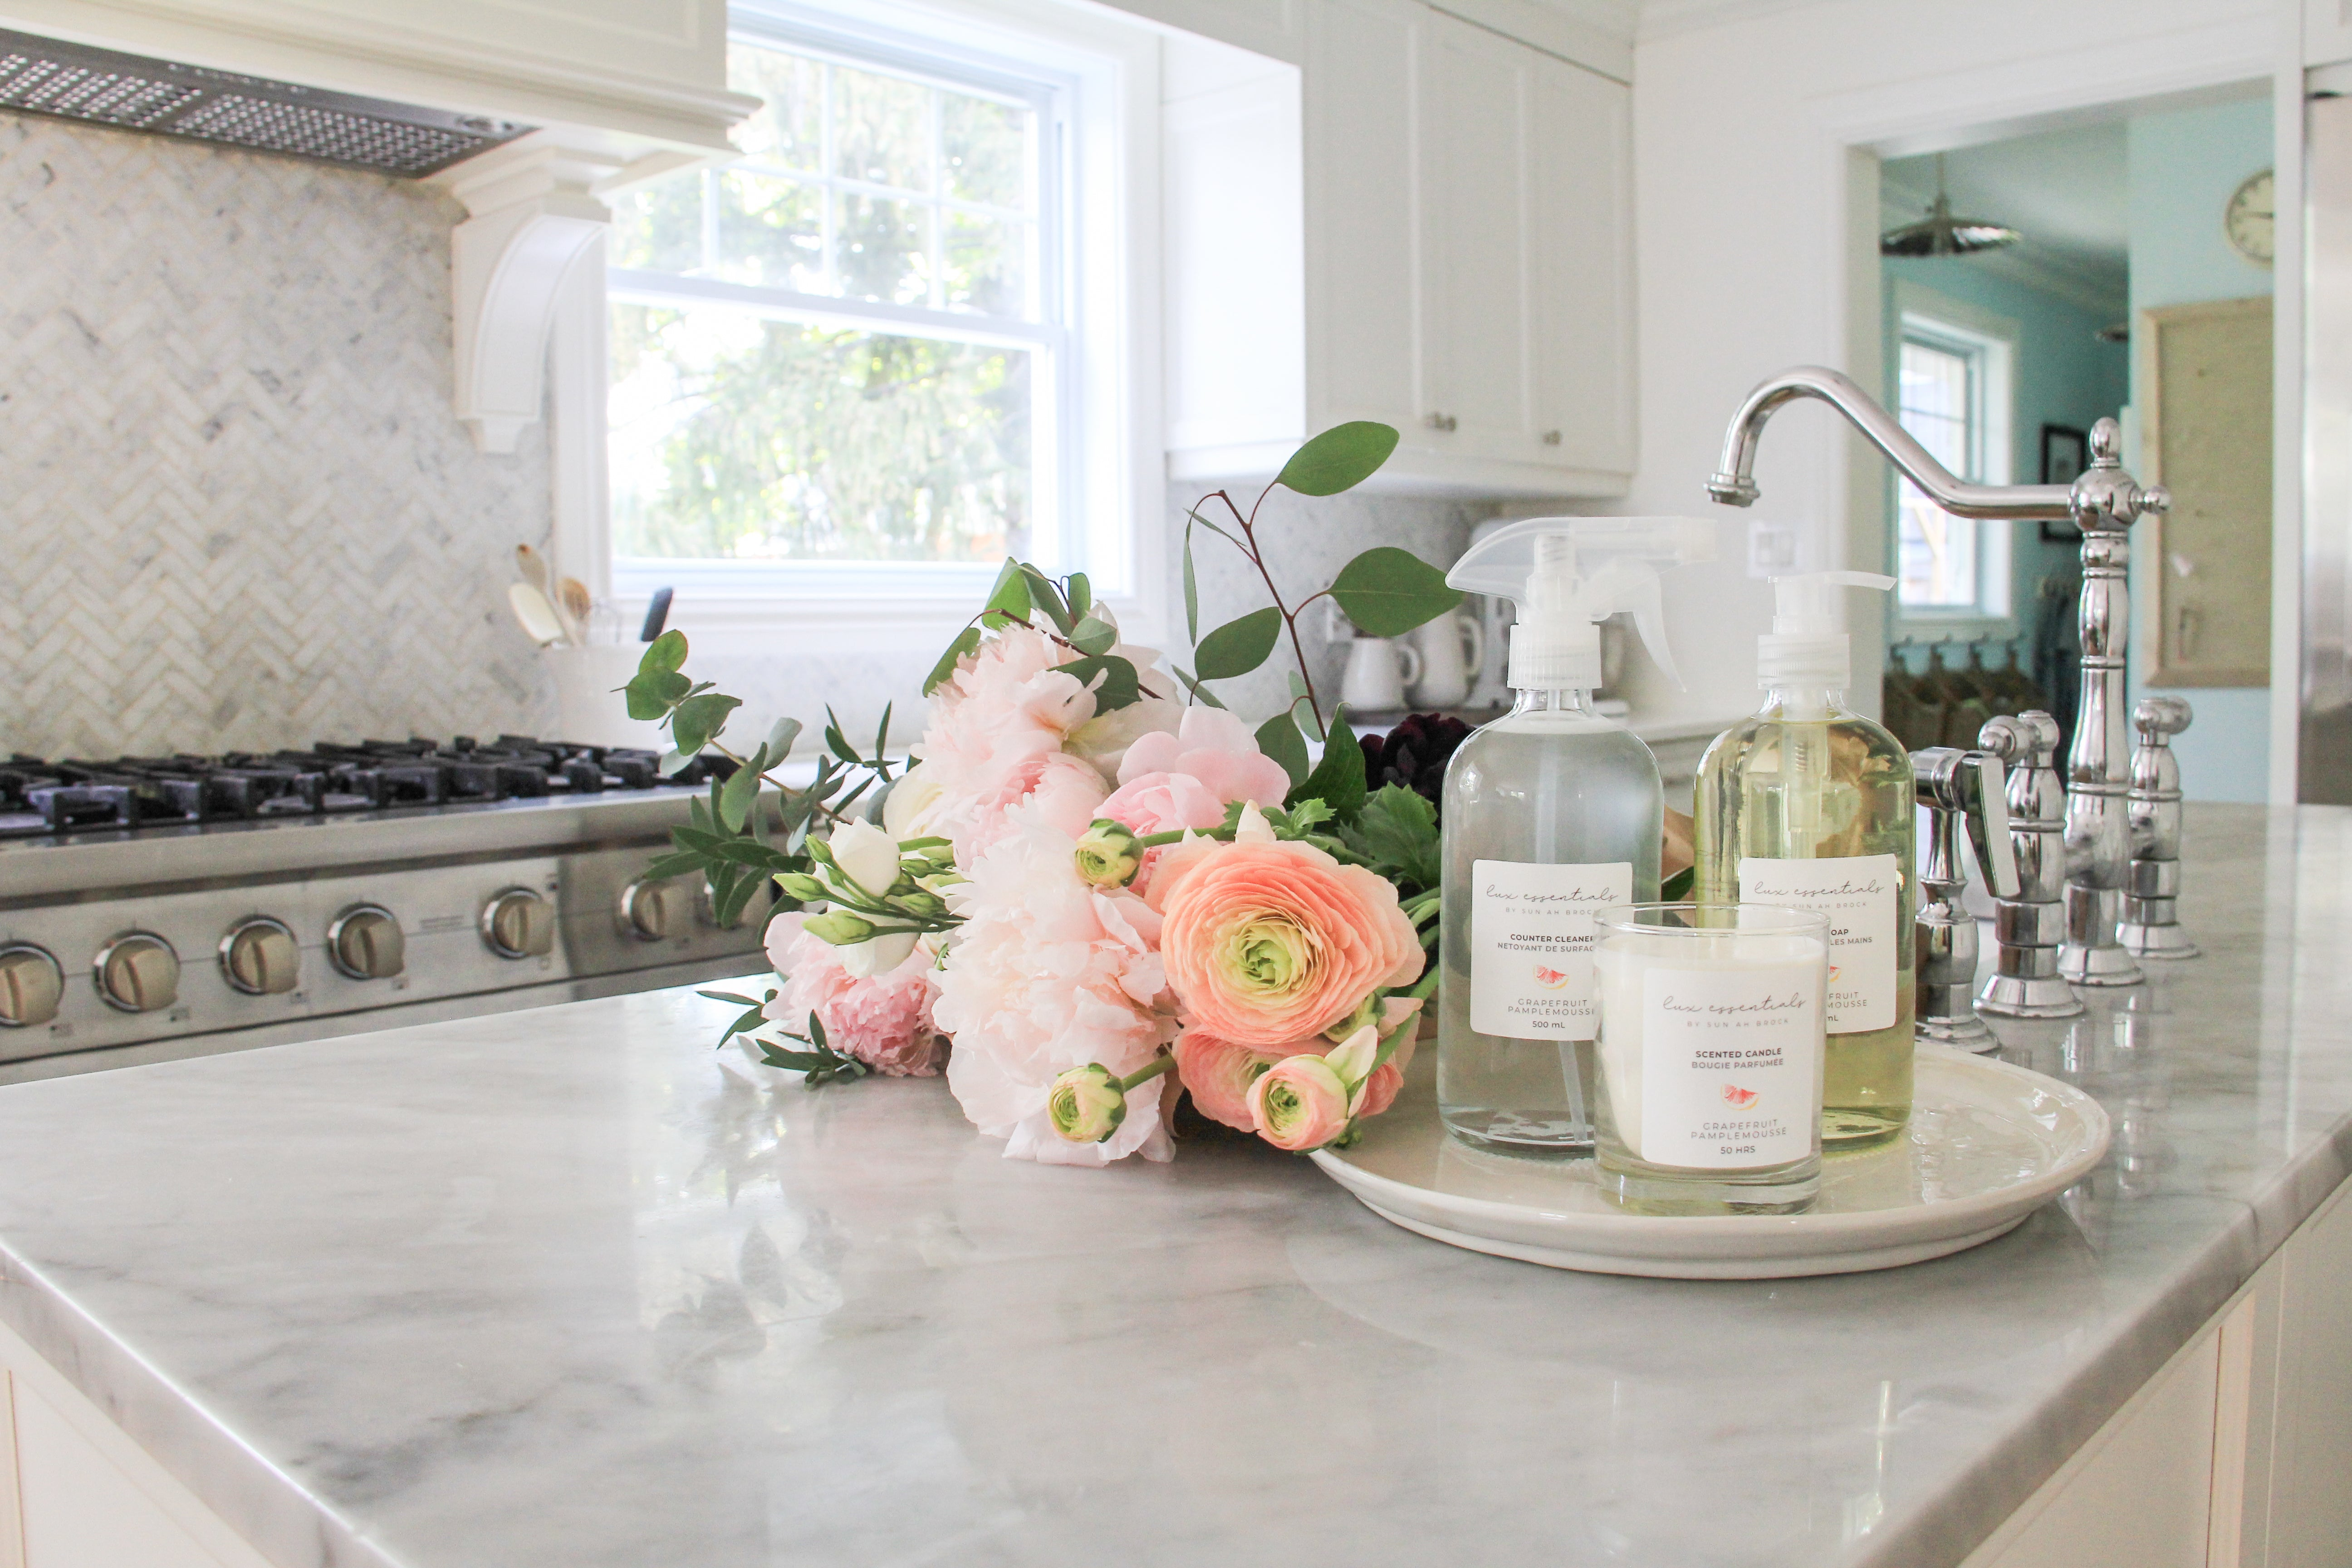 LUX essential products on a white island in a beautiful, bright kitchen in the background.